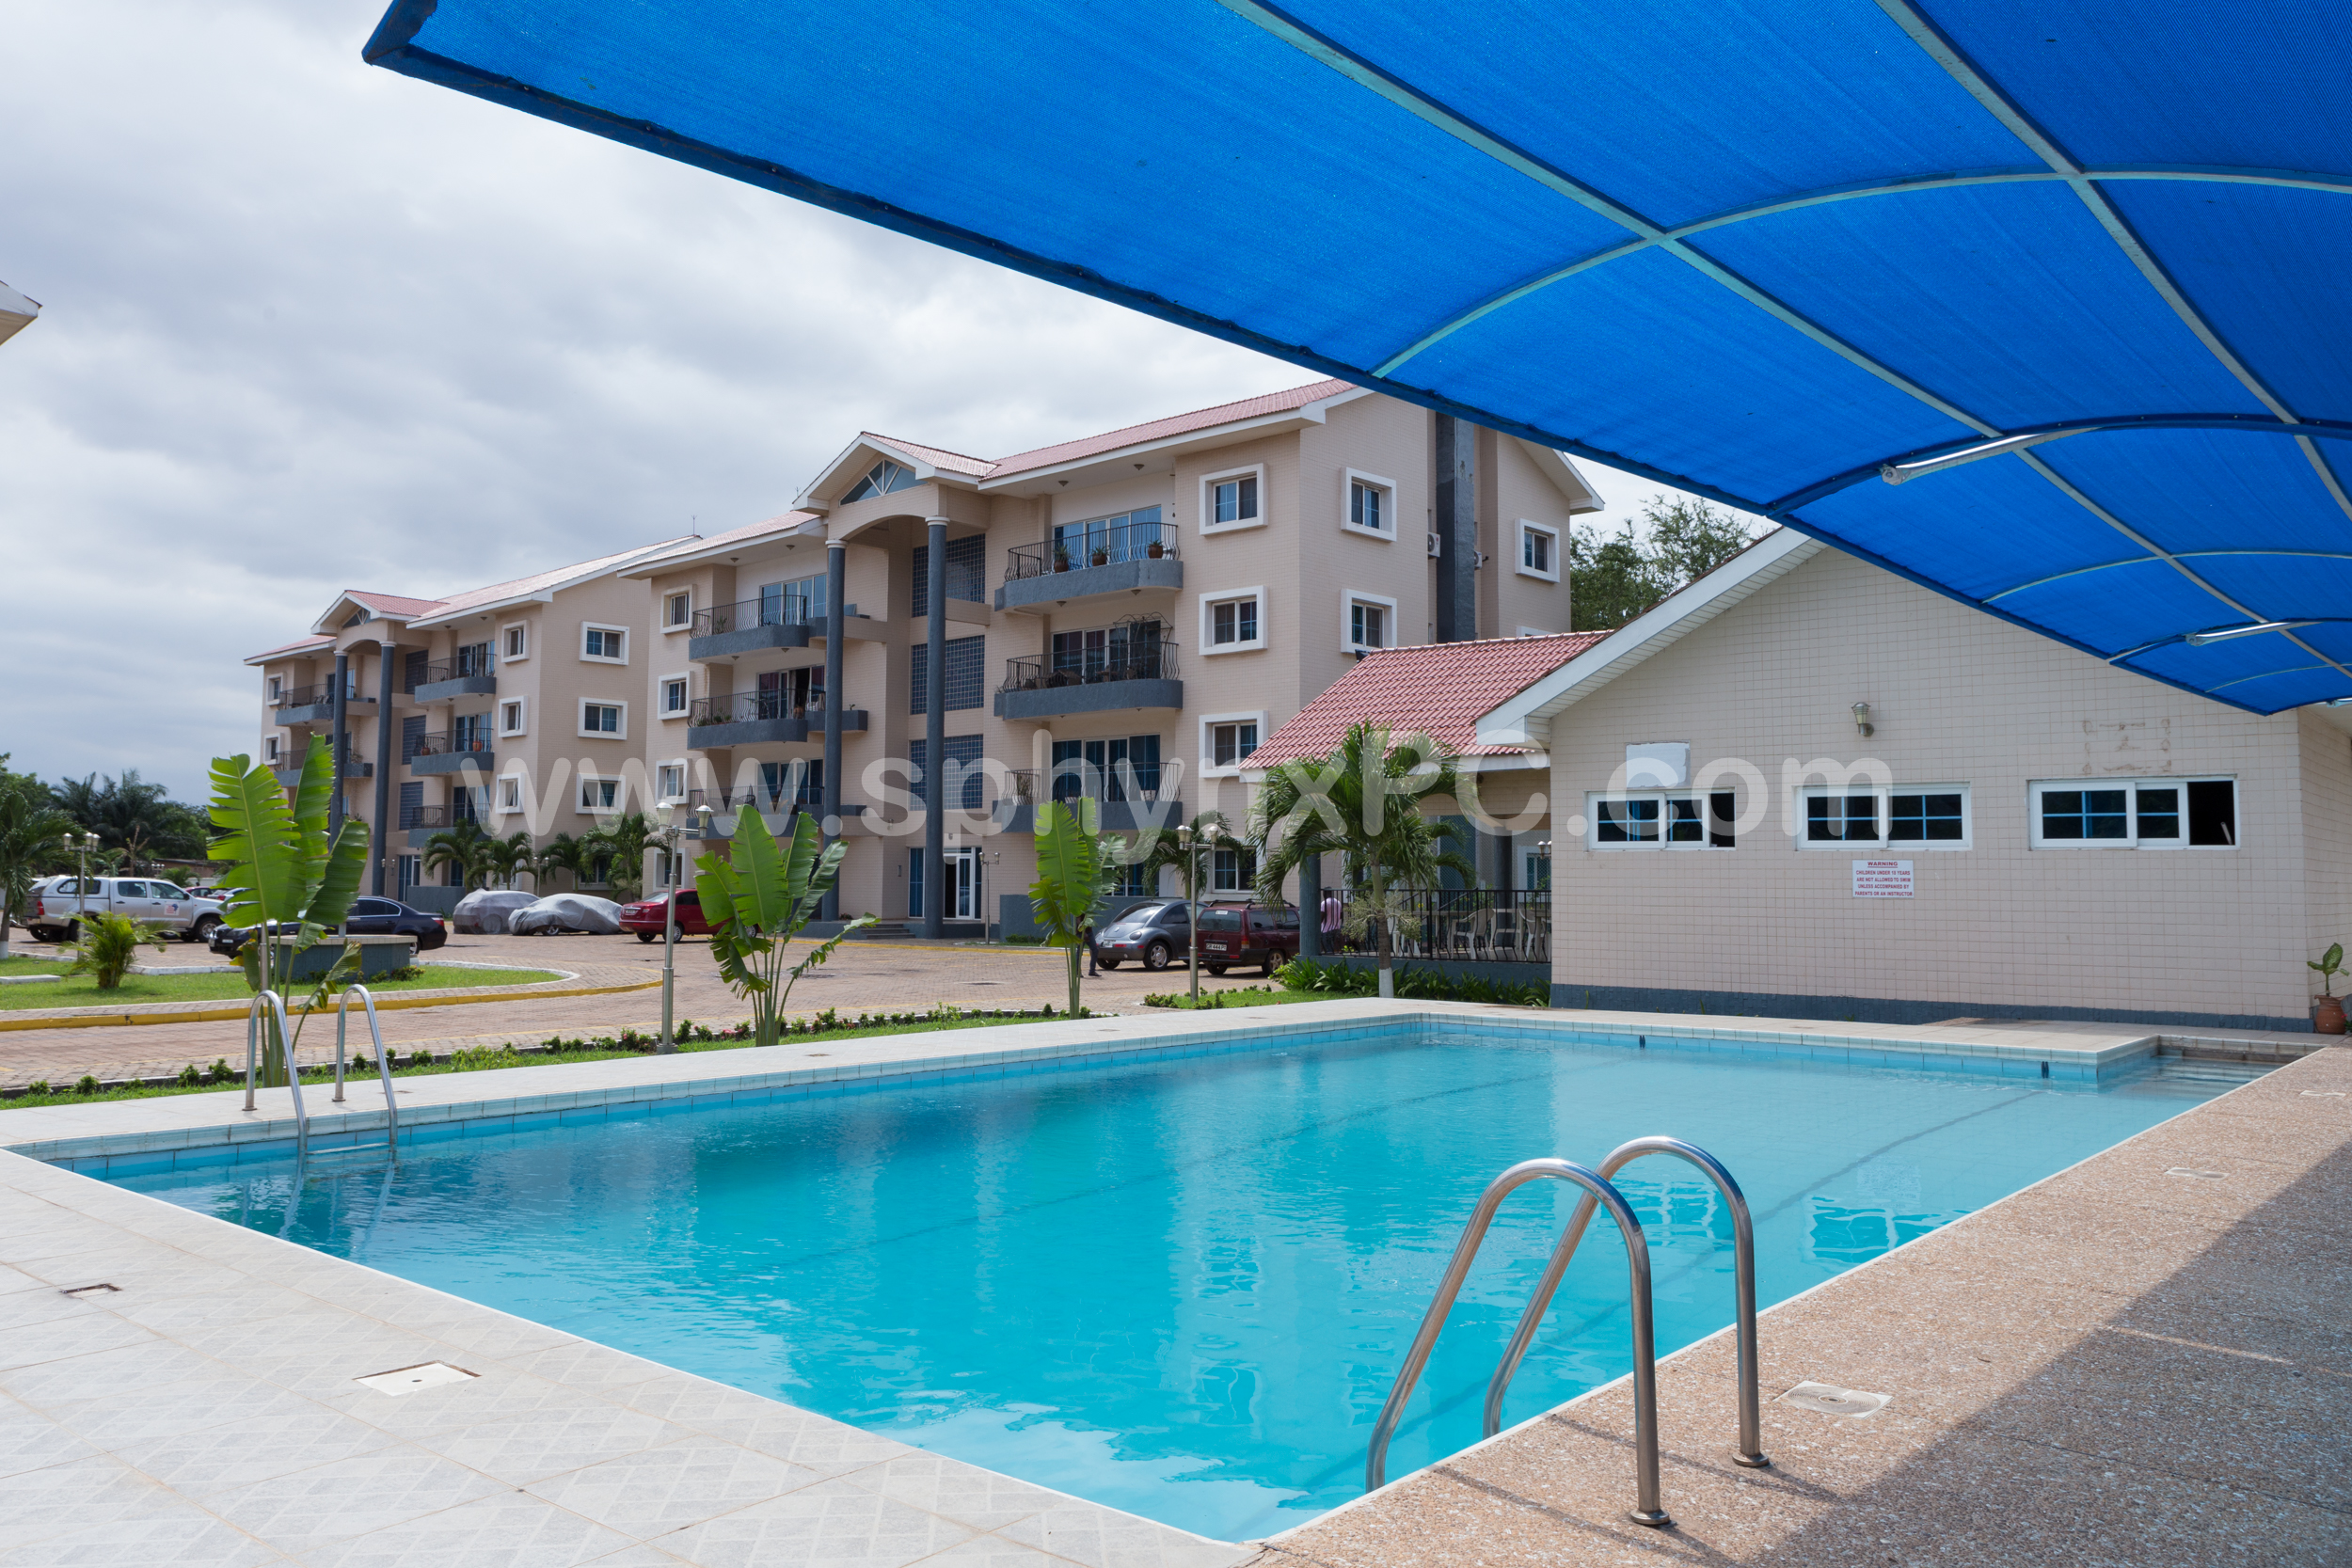 earls_court_accra_ghana_apartments_flats_for_sale_rent_to_let_real_estate_sphynxpc_vantage_location_expat_house_airport_residential_area_cantoments_ridge_hills_hyatt_17-3